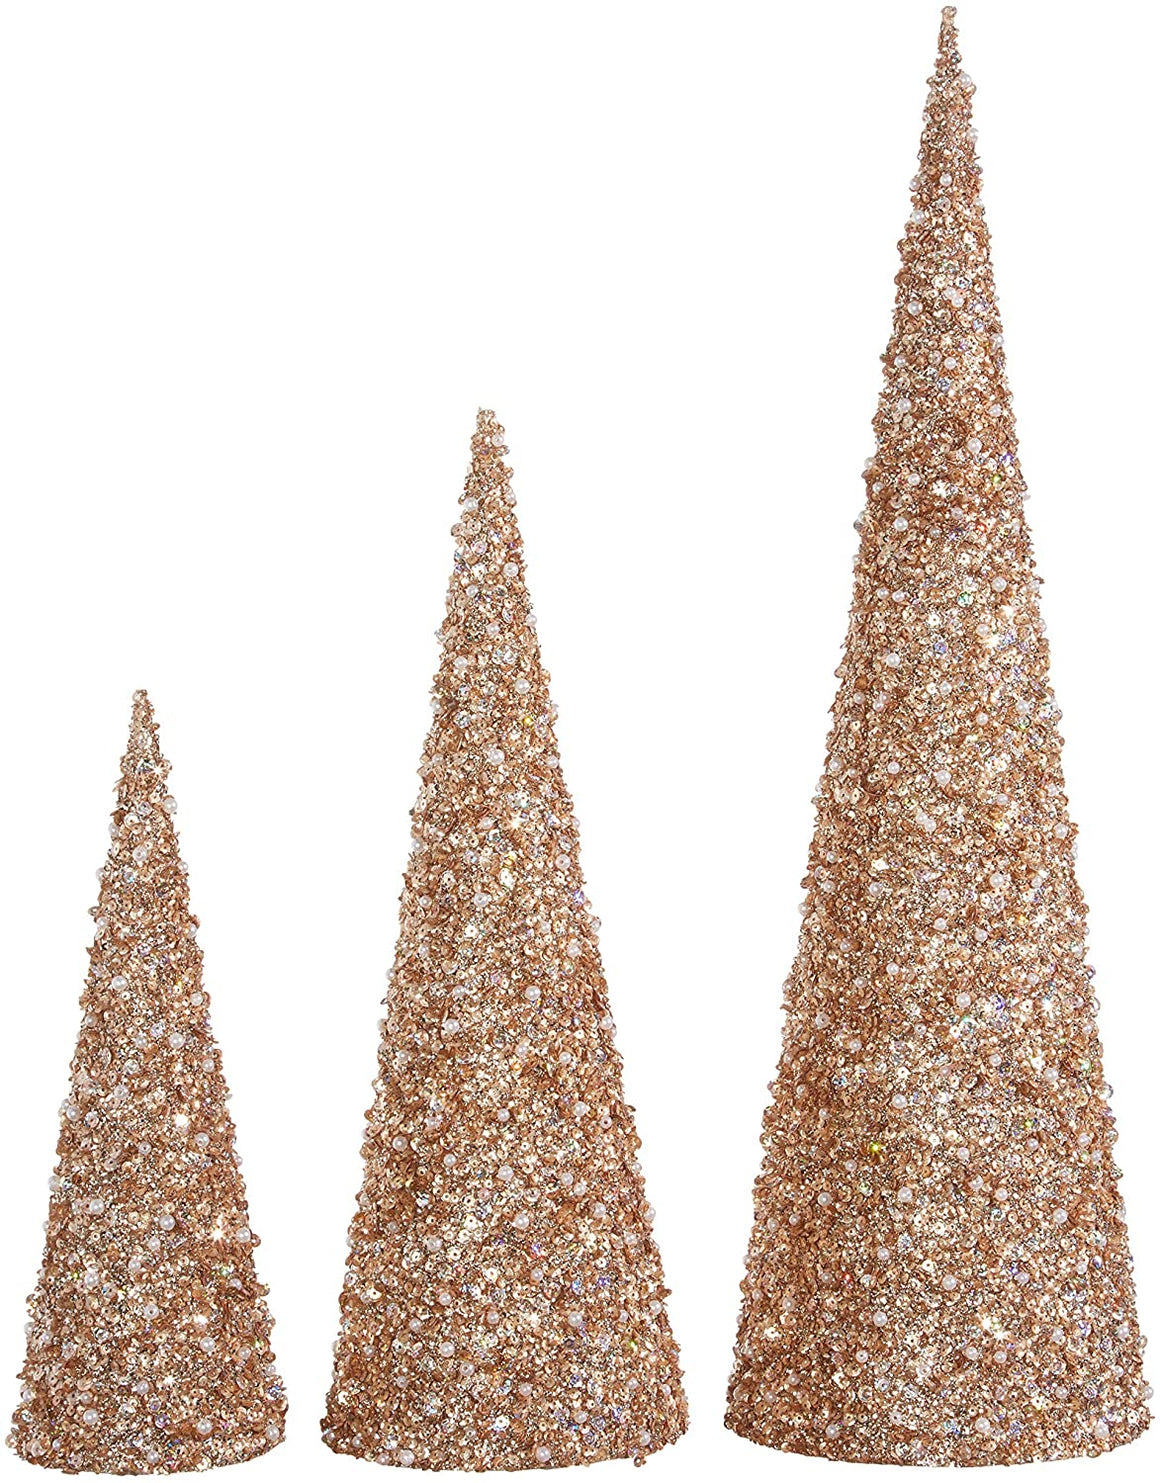 22 Inch, 17 Inch and 12 Inch High Jeweled Glittered Cone Christmas Trees Set of 3 - Champagne Gold